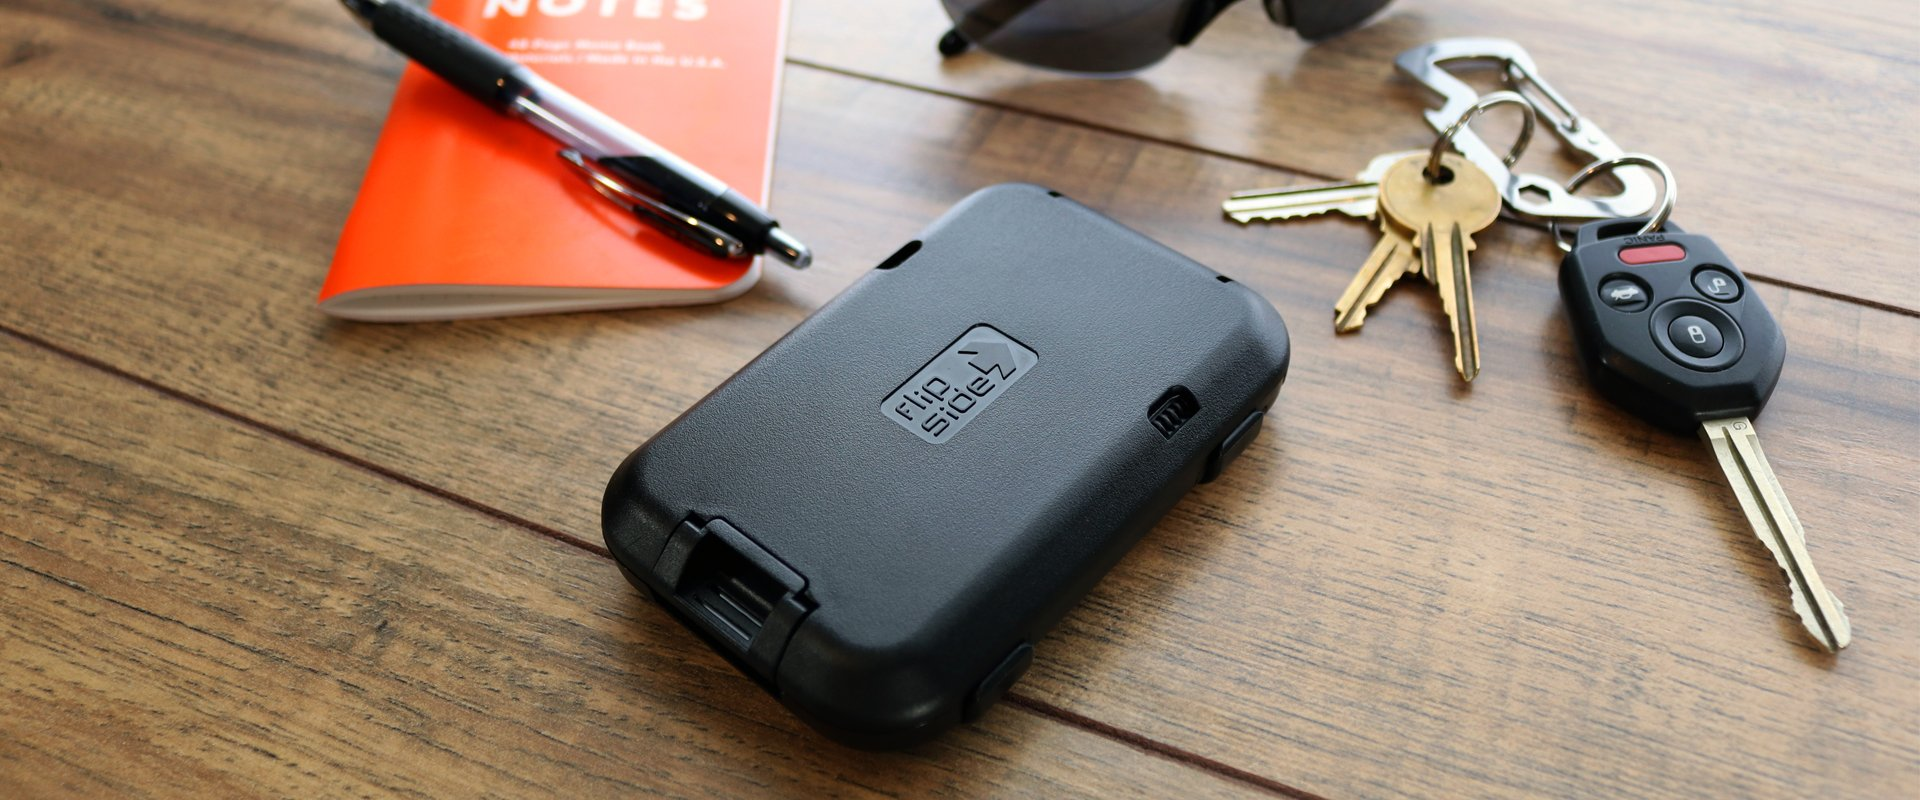 The flipside rfid wallet is also a crush resistant hardcase wallet that protects your cards from damage